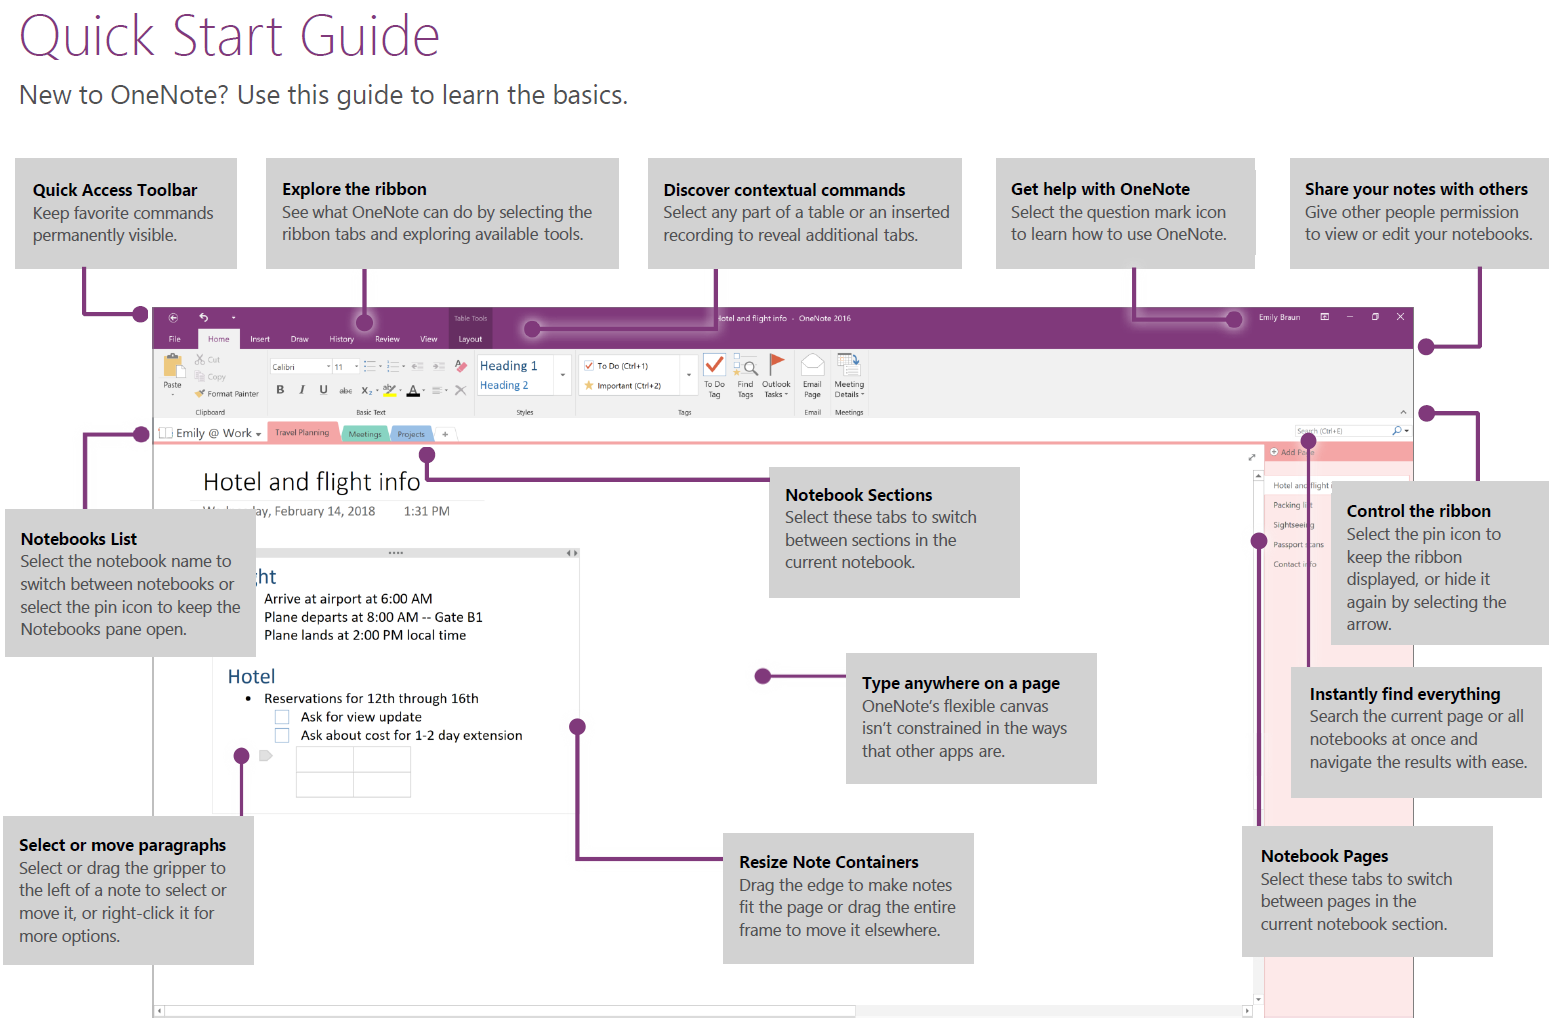 GEN - New to OneNote? Here's everything you need to know in